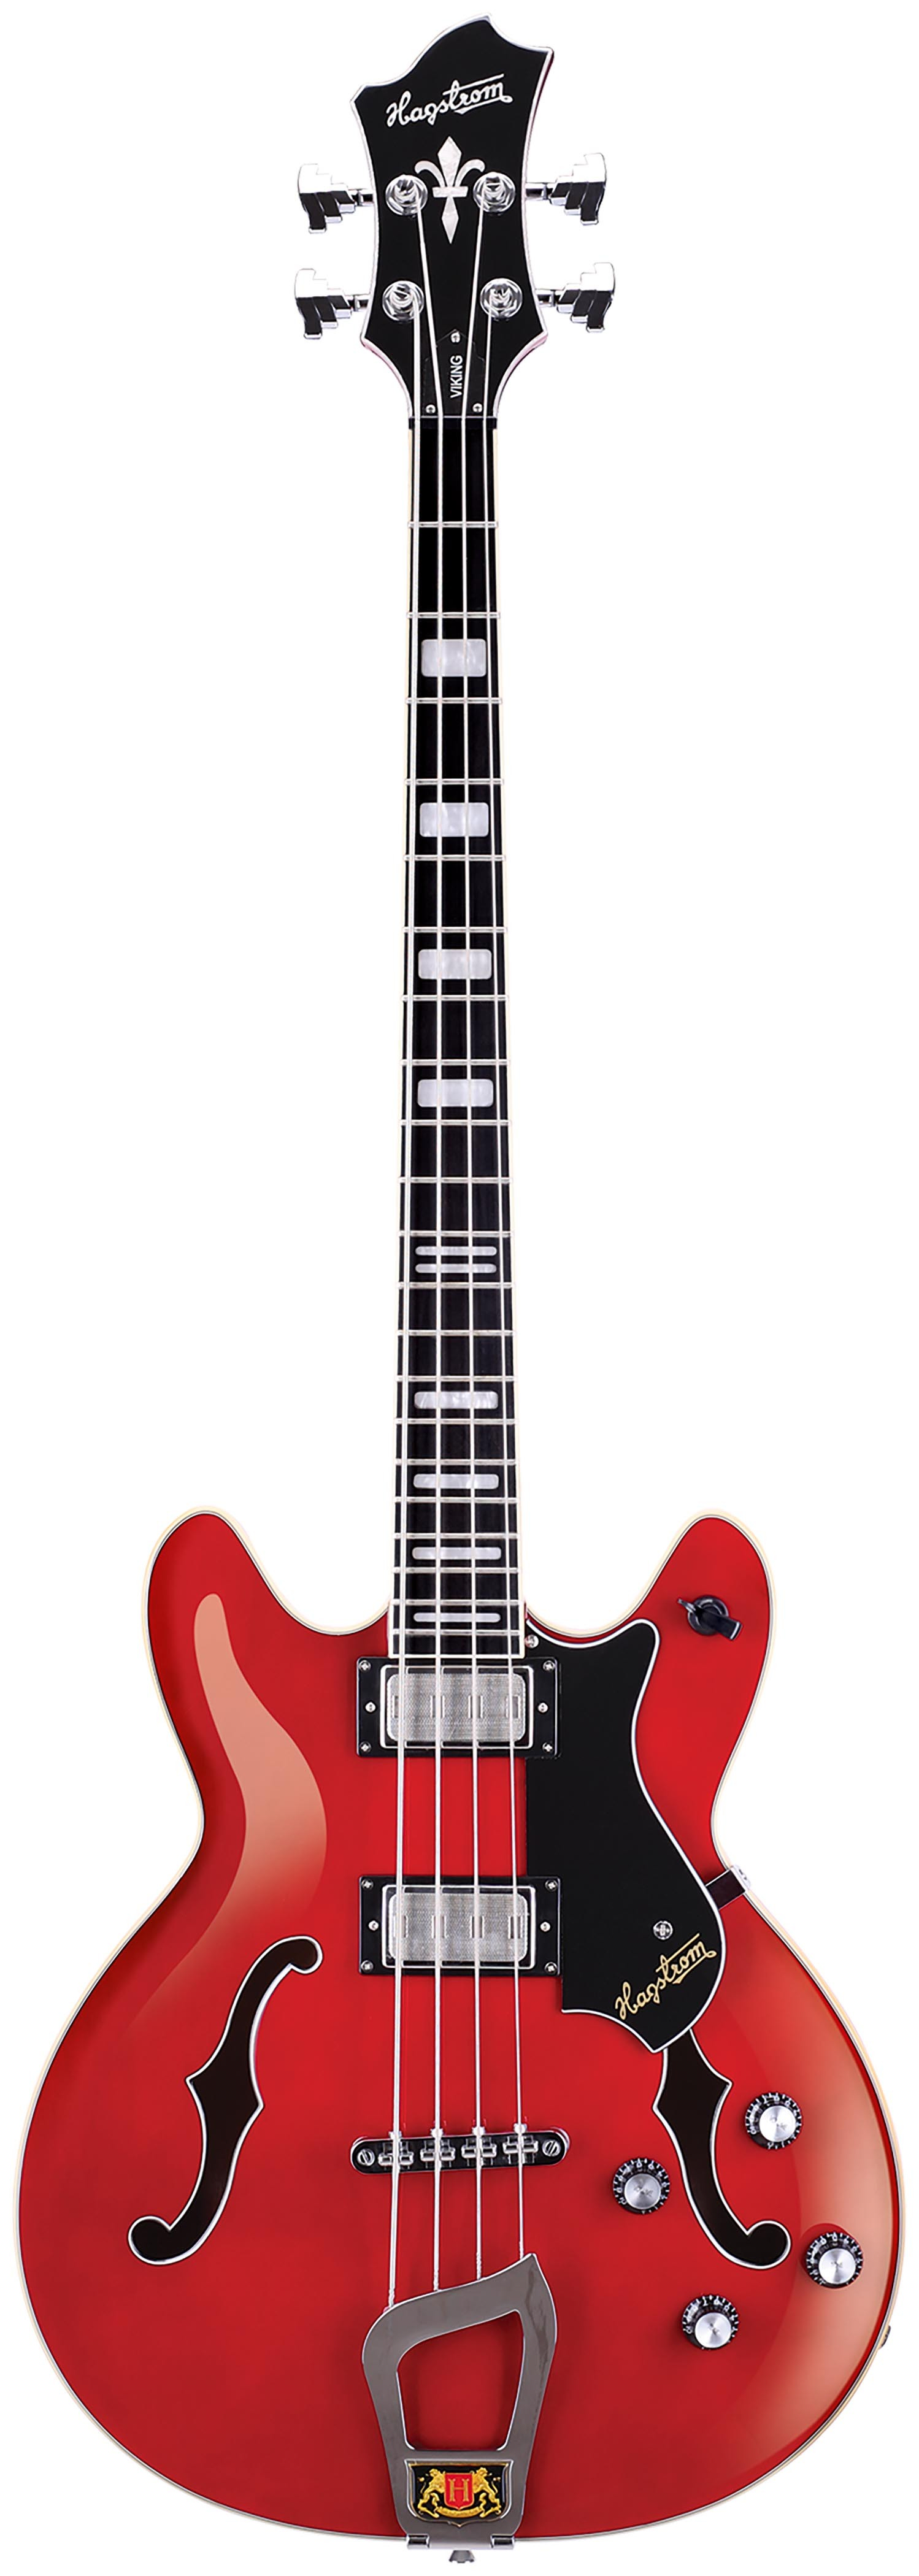 Hagstrom Viking Bass - Cherry Transparent